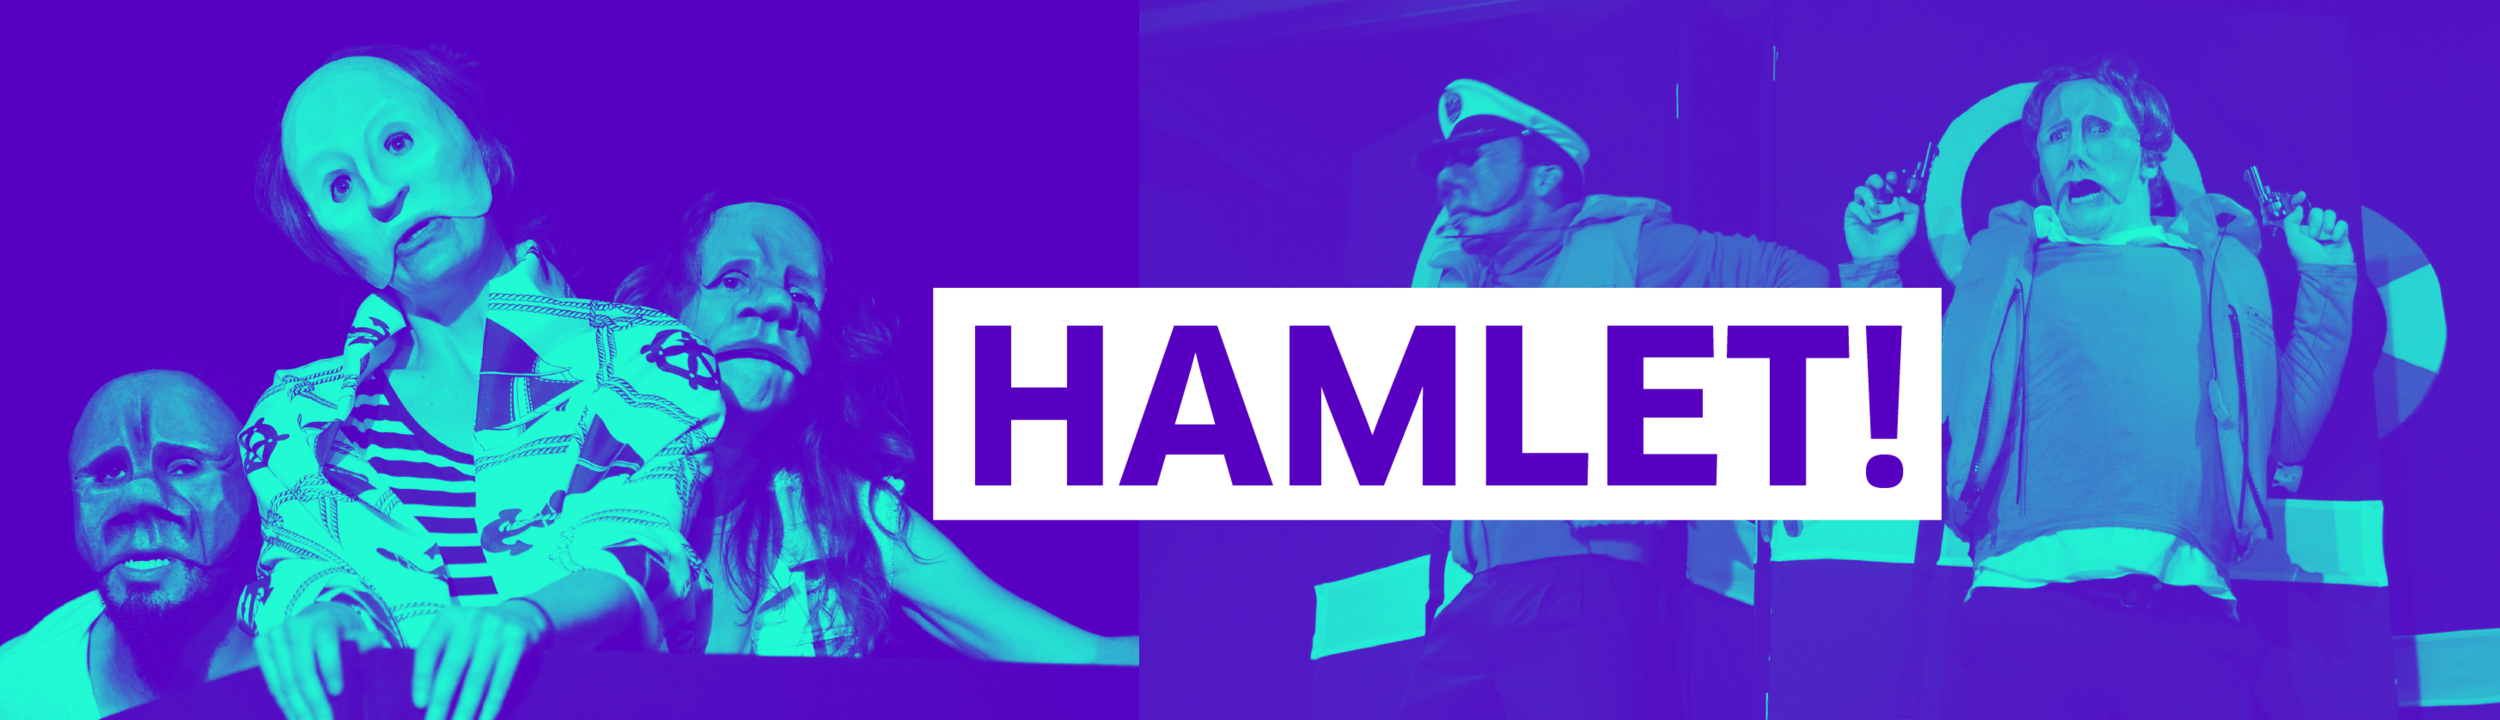 0499_CNT_Hamlet-page-banner.png